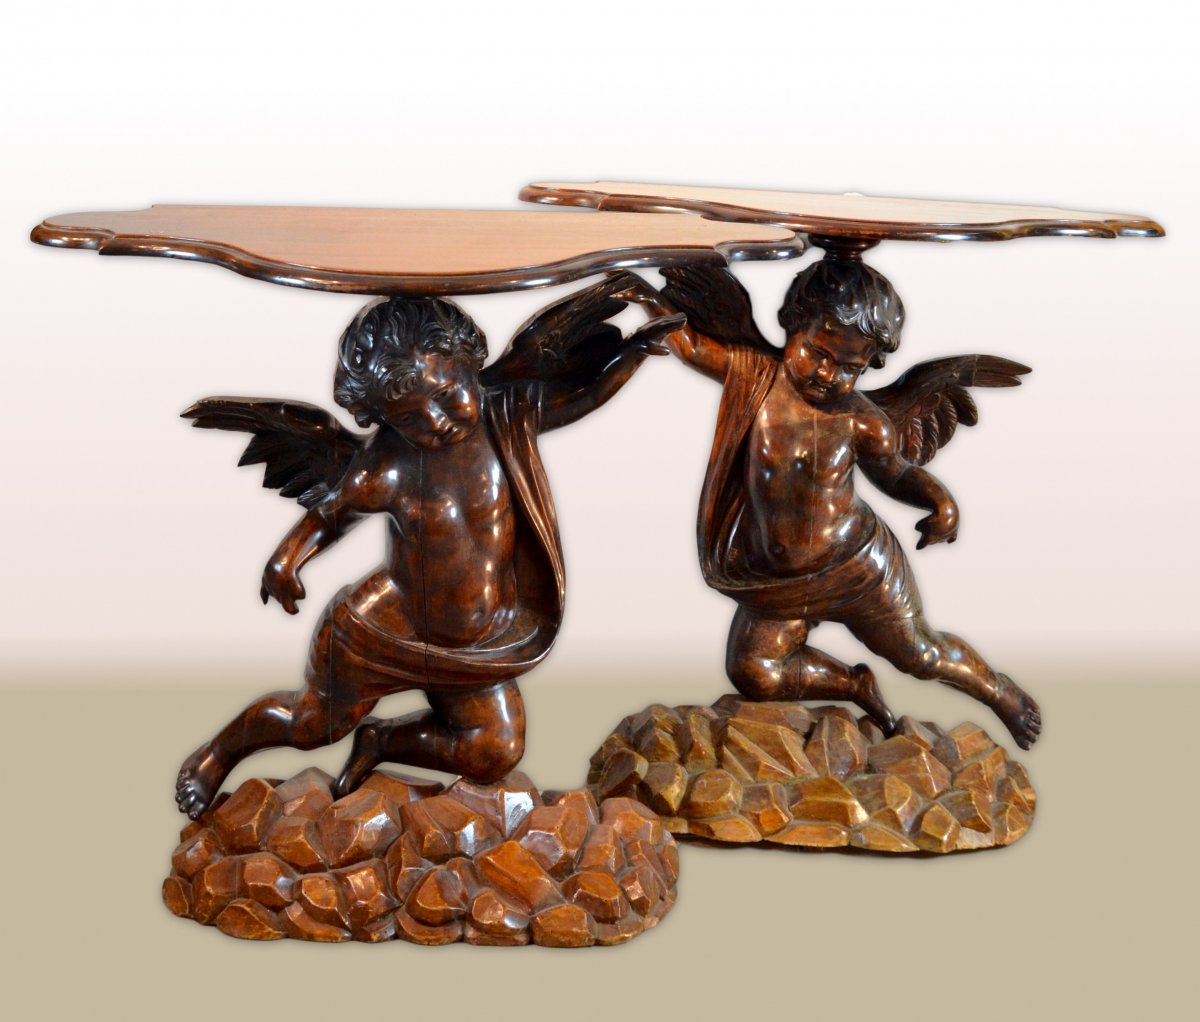 Pair Of Consolles Tables With Angels, Venetian Sculptor Nineteenth Century In The Manner Of Of Andrea Brustolon (1662 - 1732)